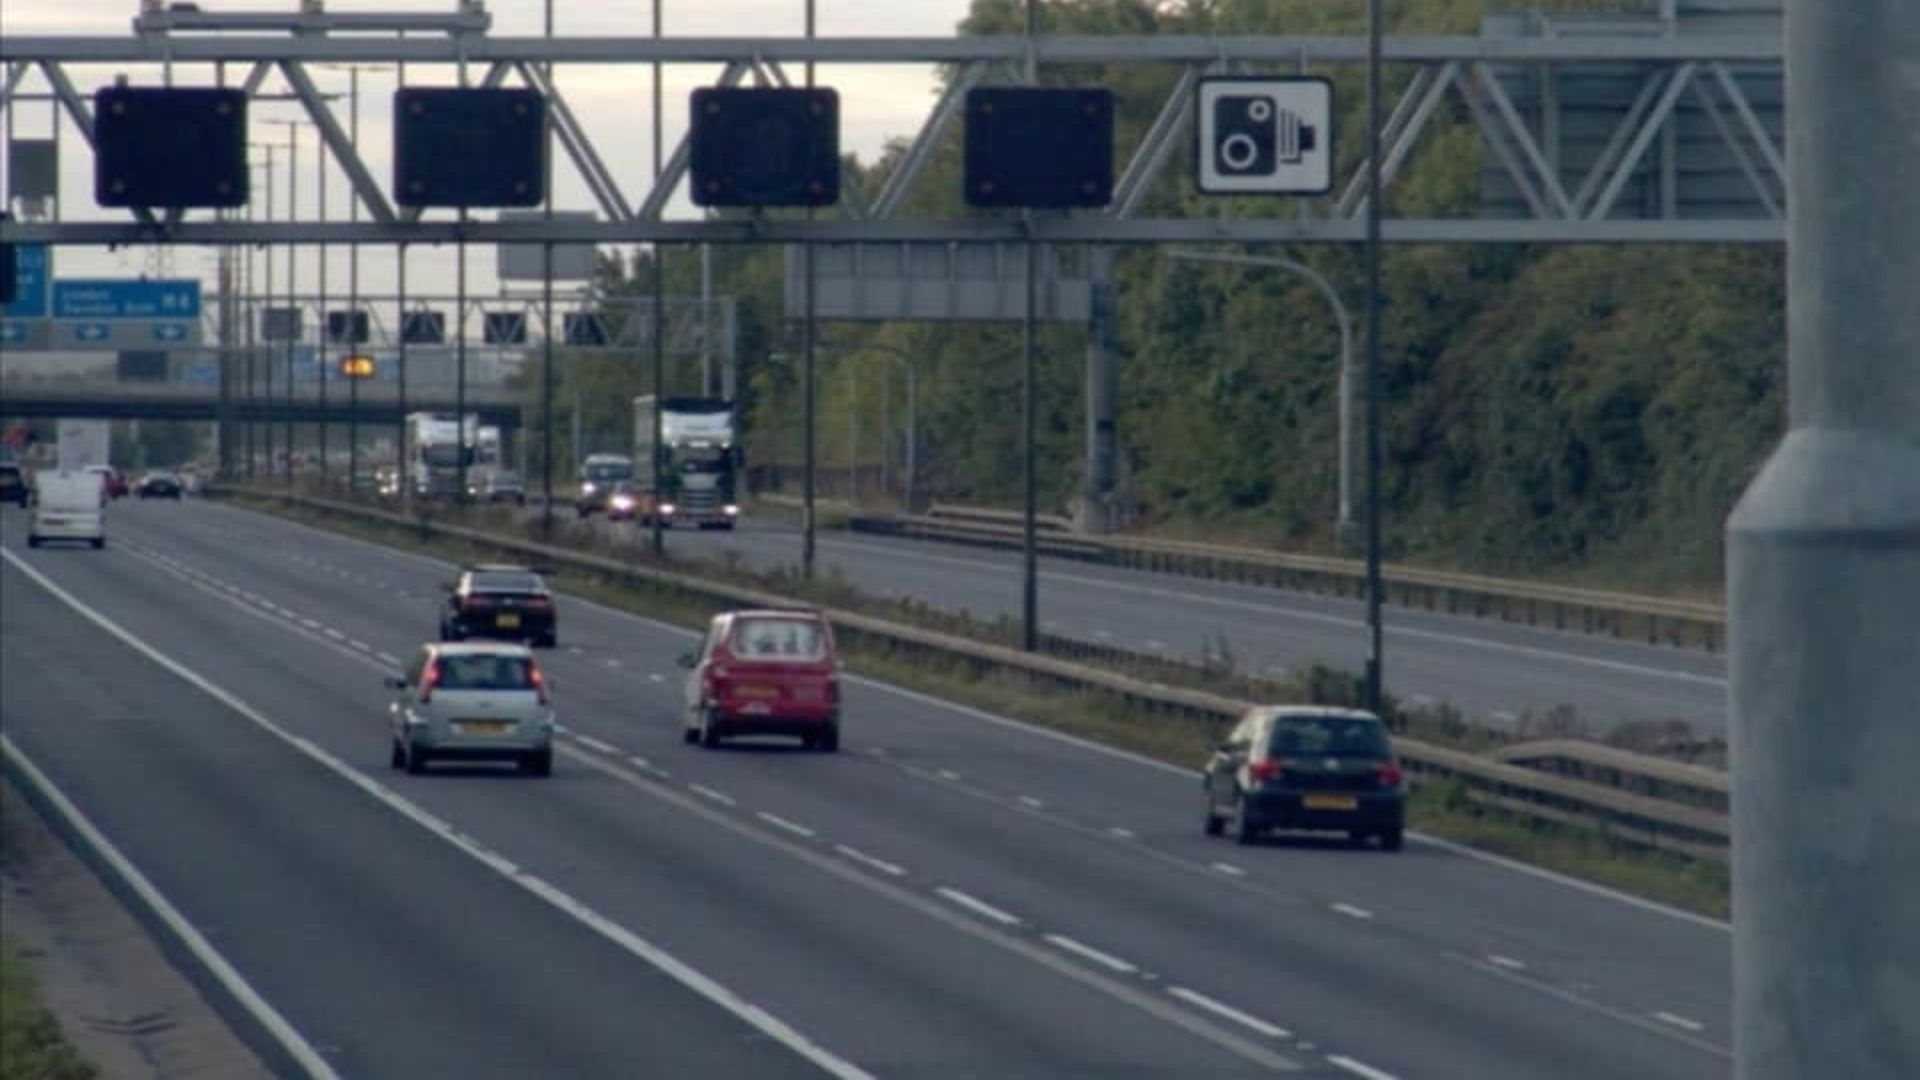 Smart motorway cameras always on